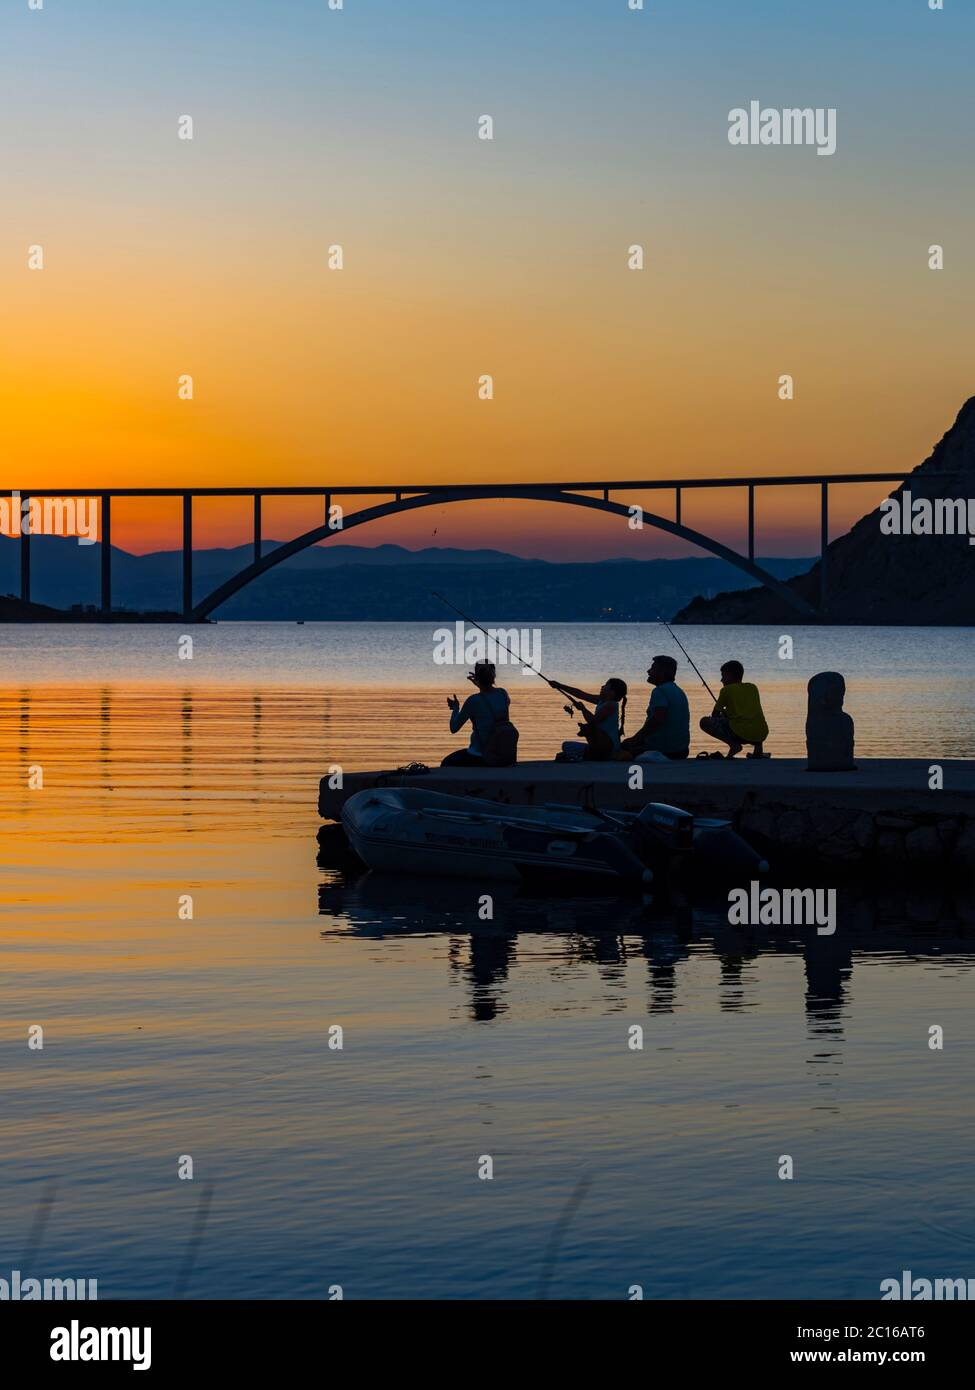 Family together dusk evening free time fishing bridge mainland to island Krk in background silhouettes silhouetting silhouette pretty picturesque Stock Photo